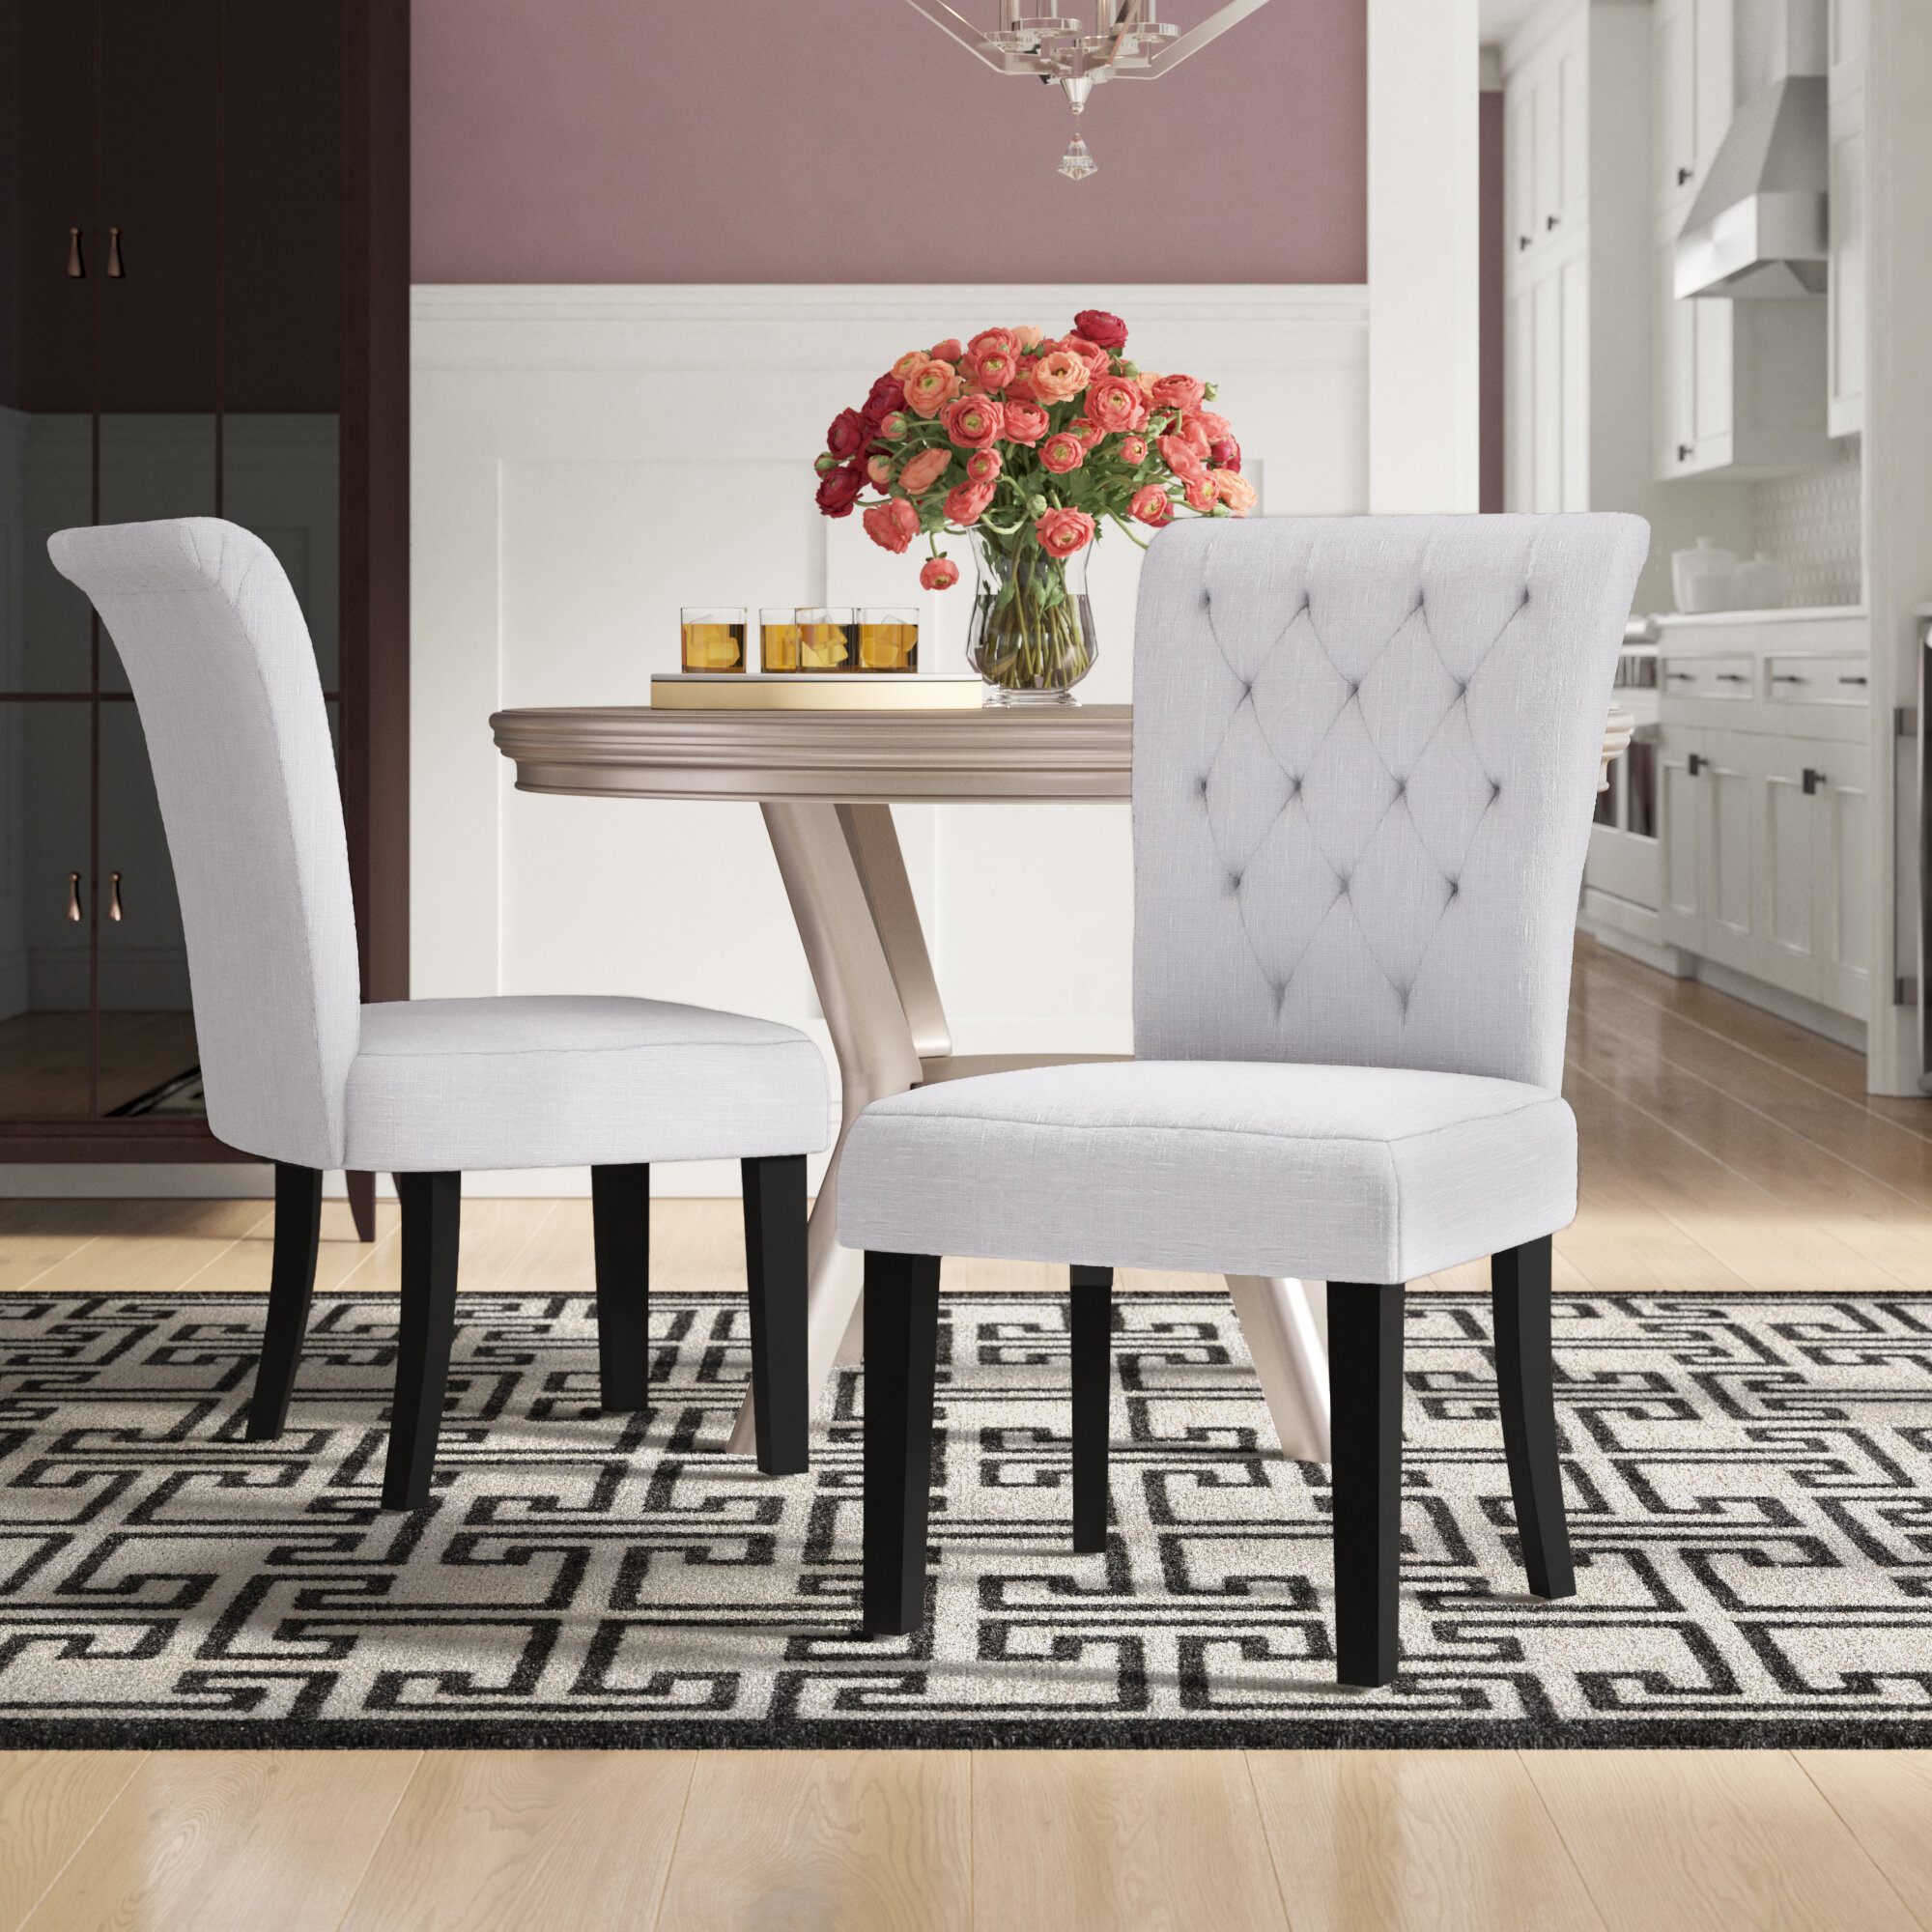 7d3b2979a9b3 Willa Arlo Interiors Brady Upholstered Dining Chair   Reviews